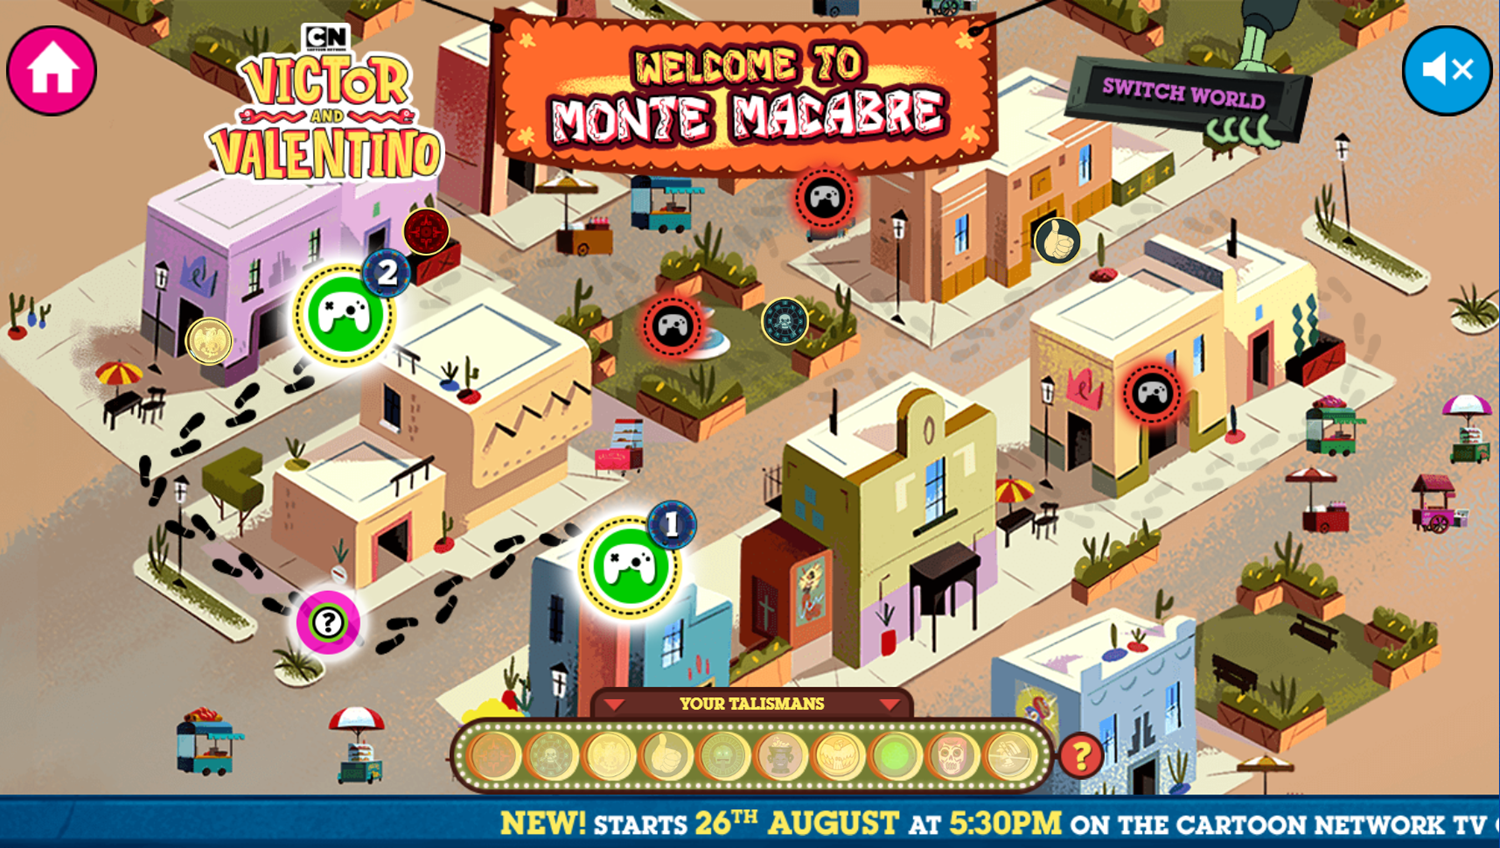 Victor and Valentino Mission to Monte Macabre Case Game Map Screenshot.